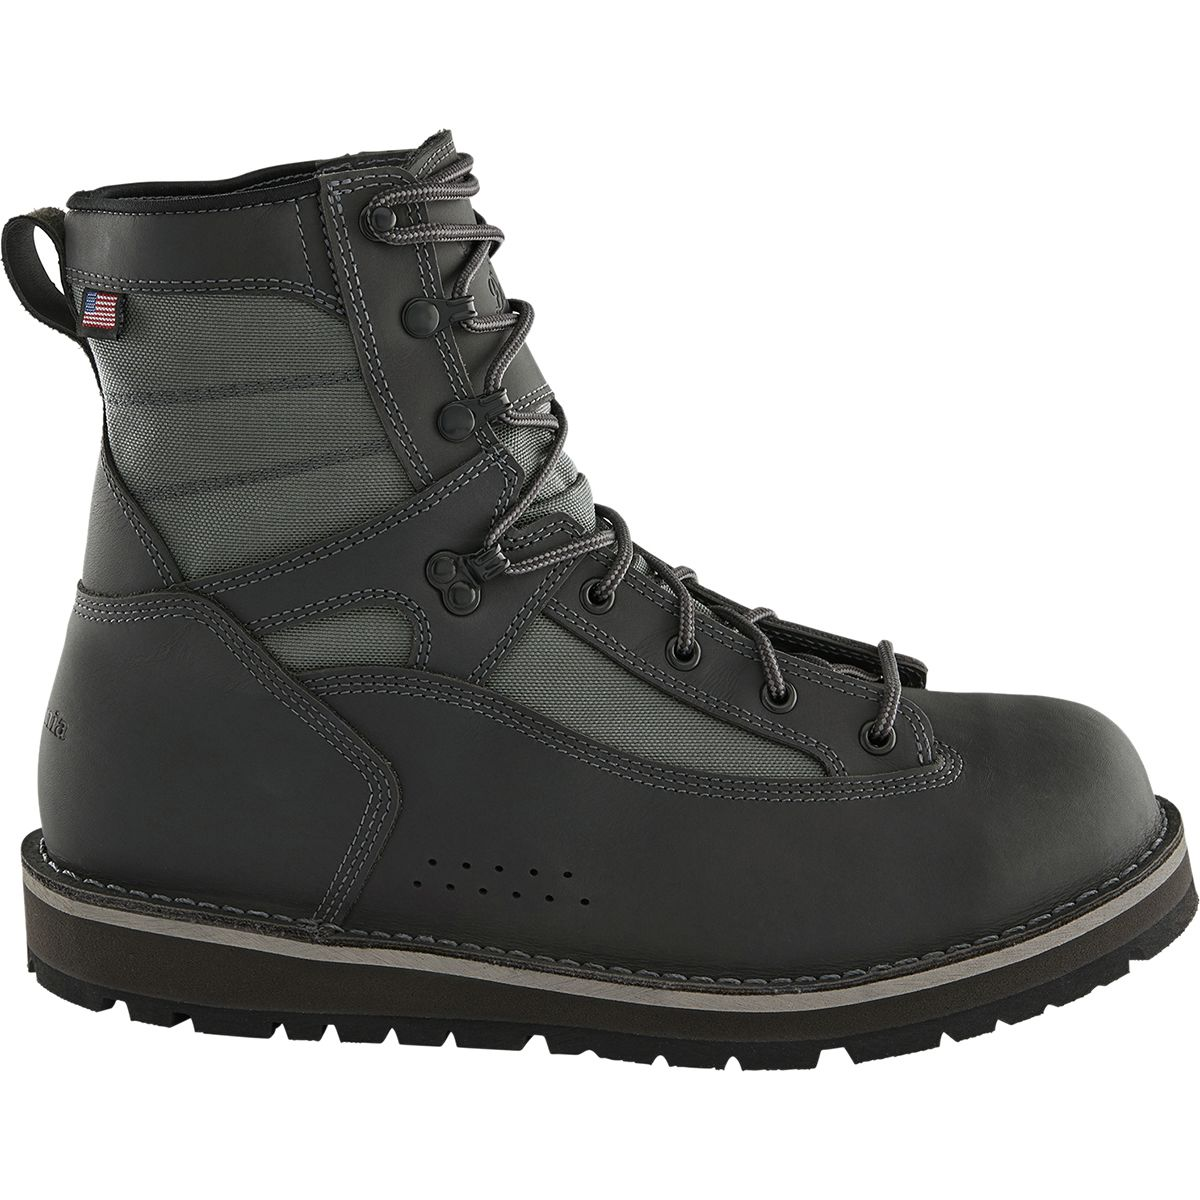 photo: Patagonia Foot Tractor Wading Boots - Sticky Rubber (Built By Danner) wading boots